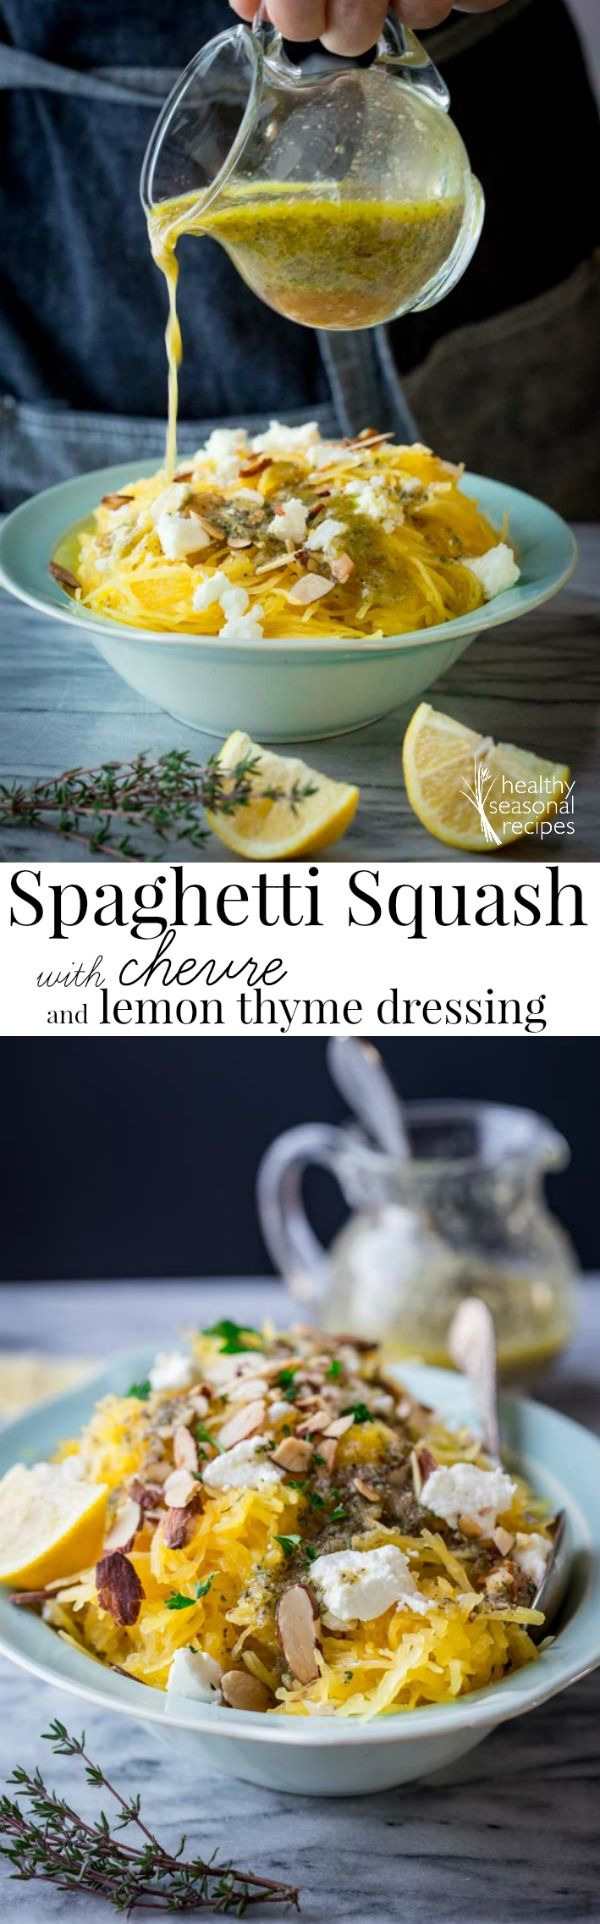 667 best healthy seasonal recipes images on pinterest seasonal healthy seasonal recipes see more i heart this spaghetti squash with chvre almonds and lemon thyme dressing prepare yourself forumfinder Images